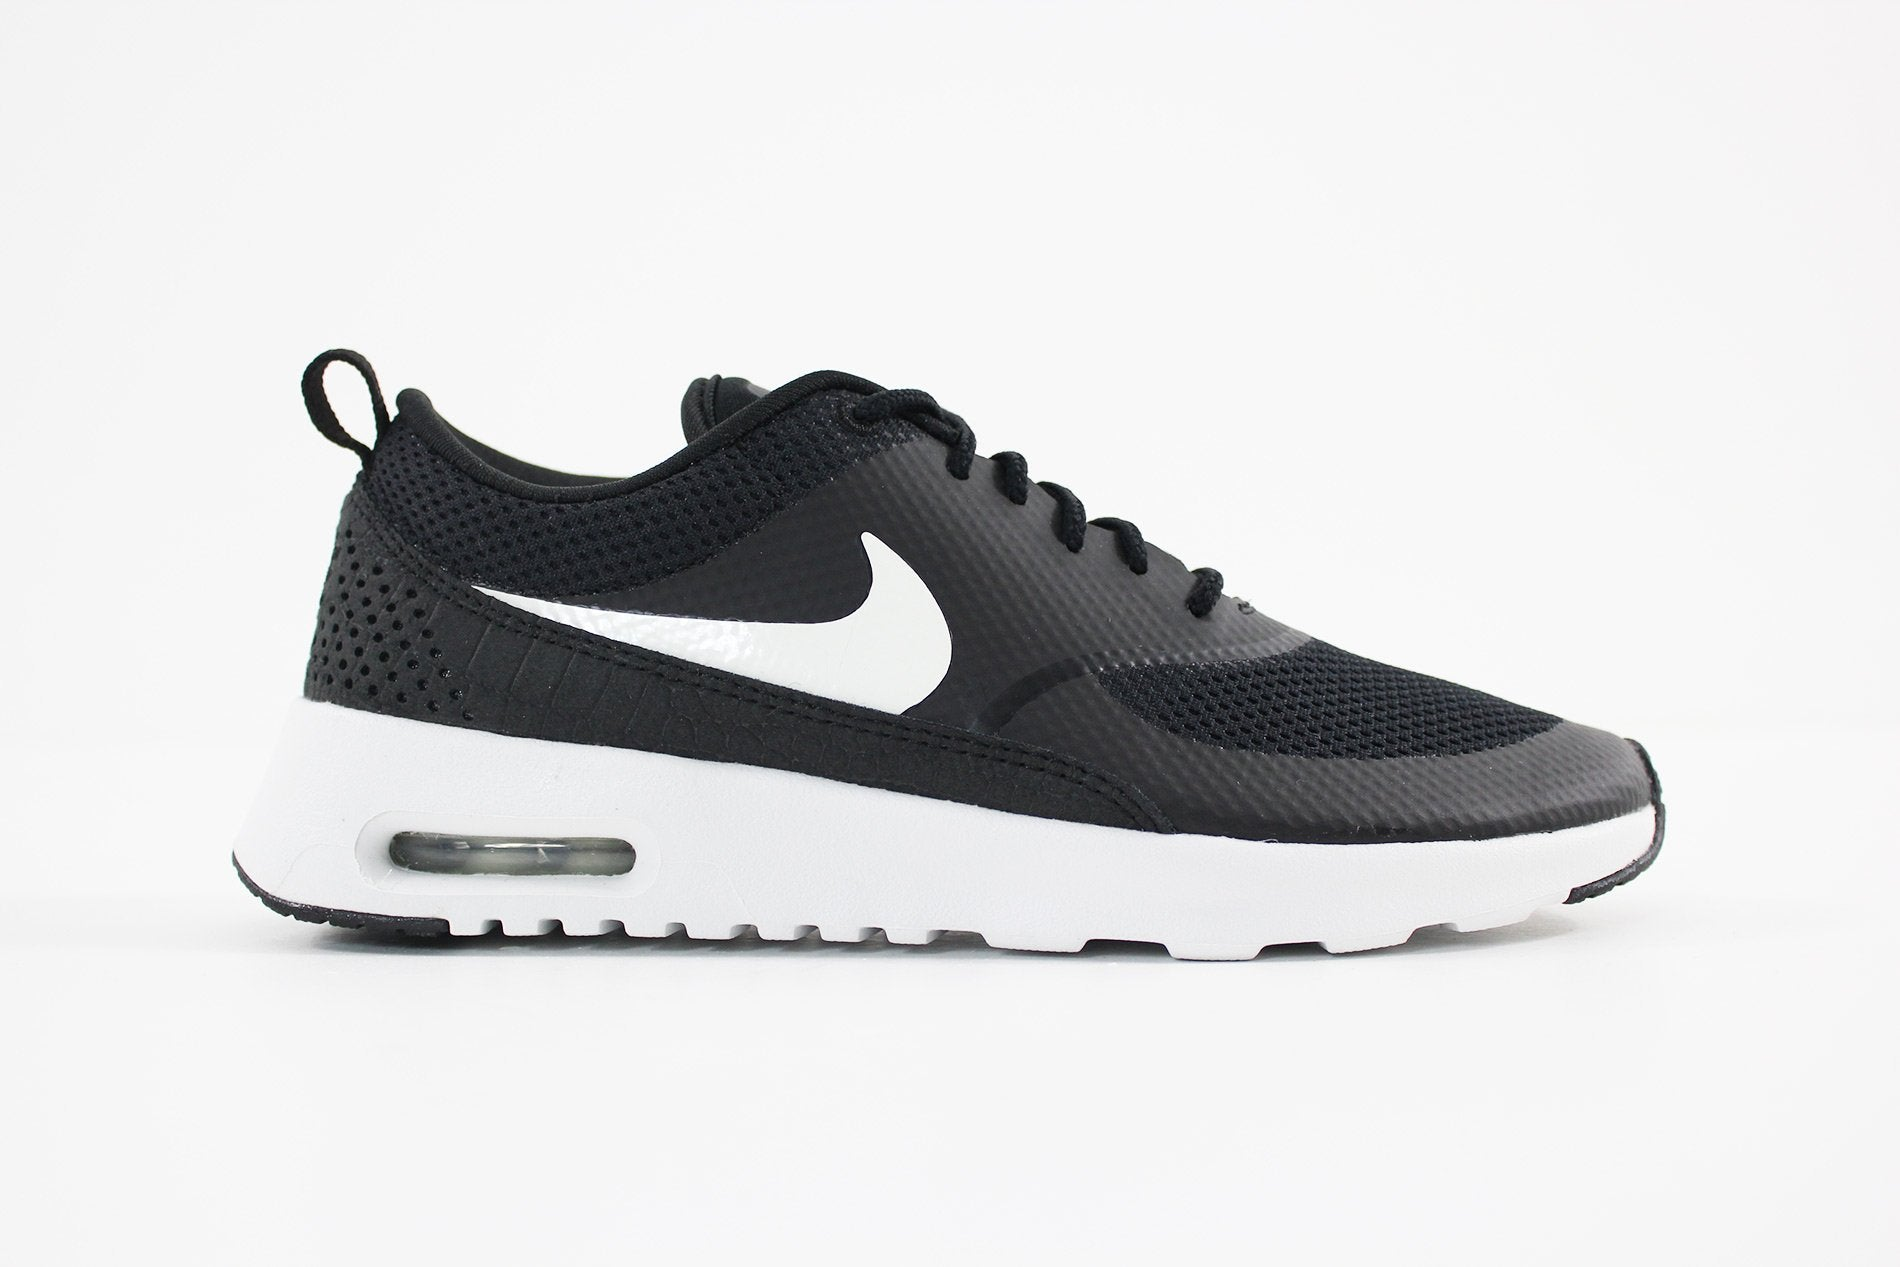 b4cdafc0ac1587 Nike - Womens Nike Air Max Thea Shoe (BLACK SUMMIT WHITE) 599409-. Nike - Womens  Nike Air Max Thea Shoe (BLACK SUMMIT WHITE) 599409-